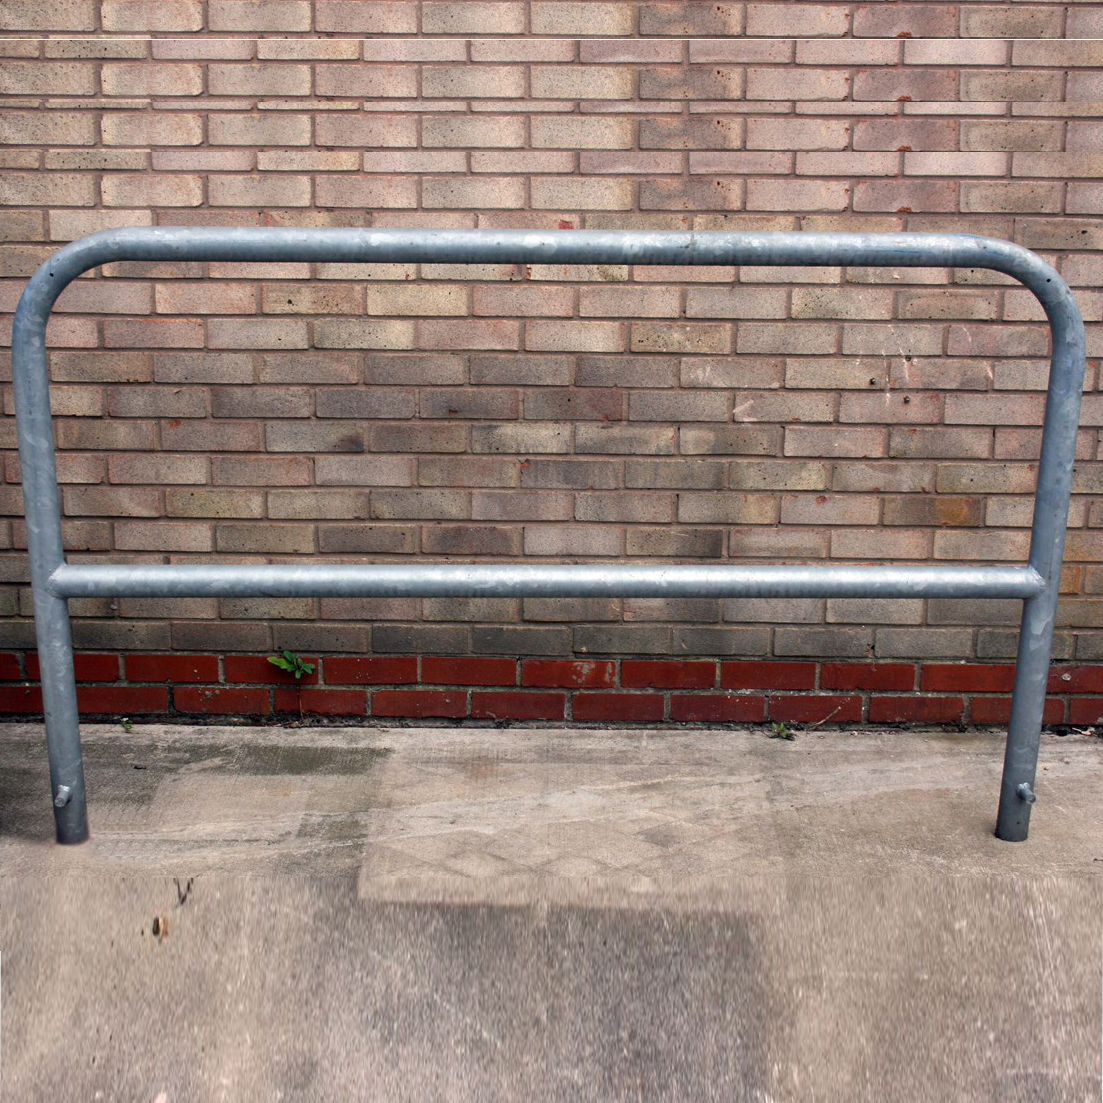 Motorcycle security barrier 1